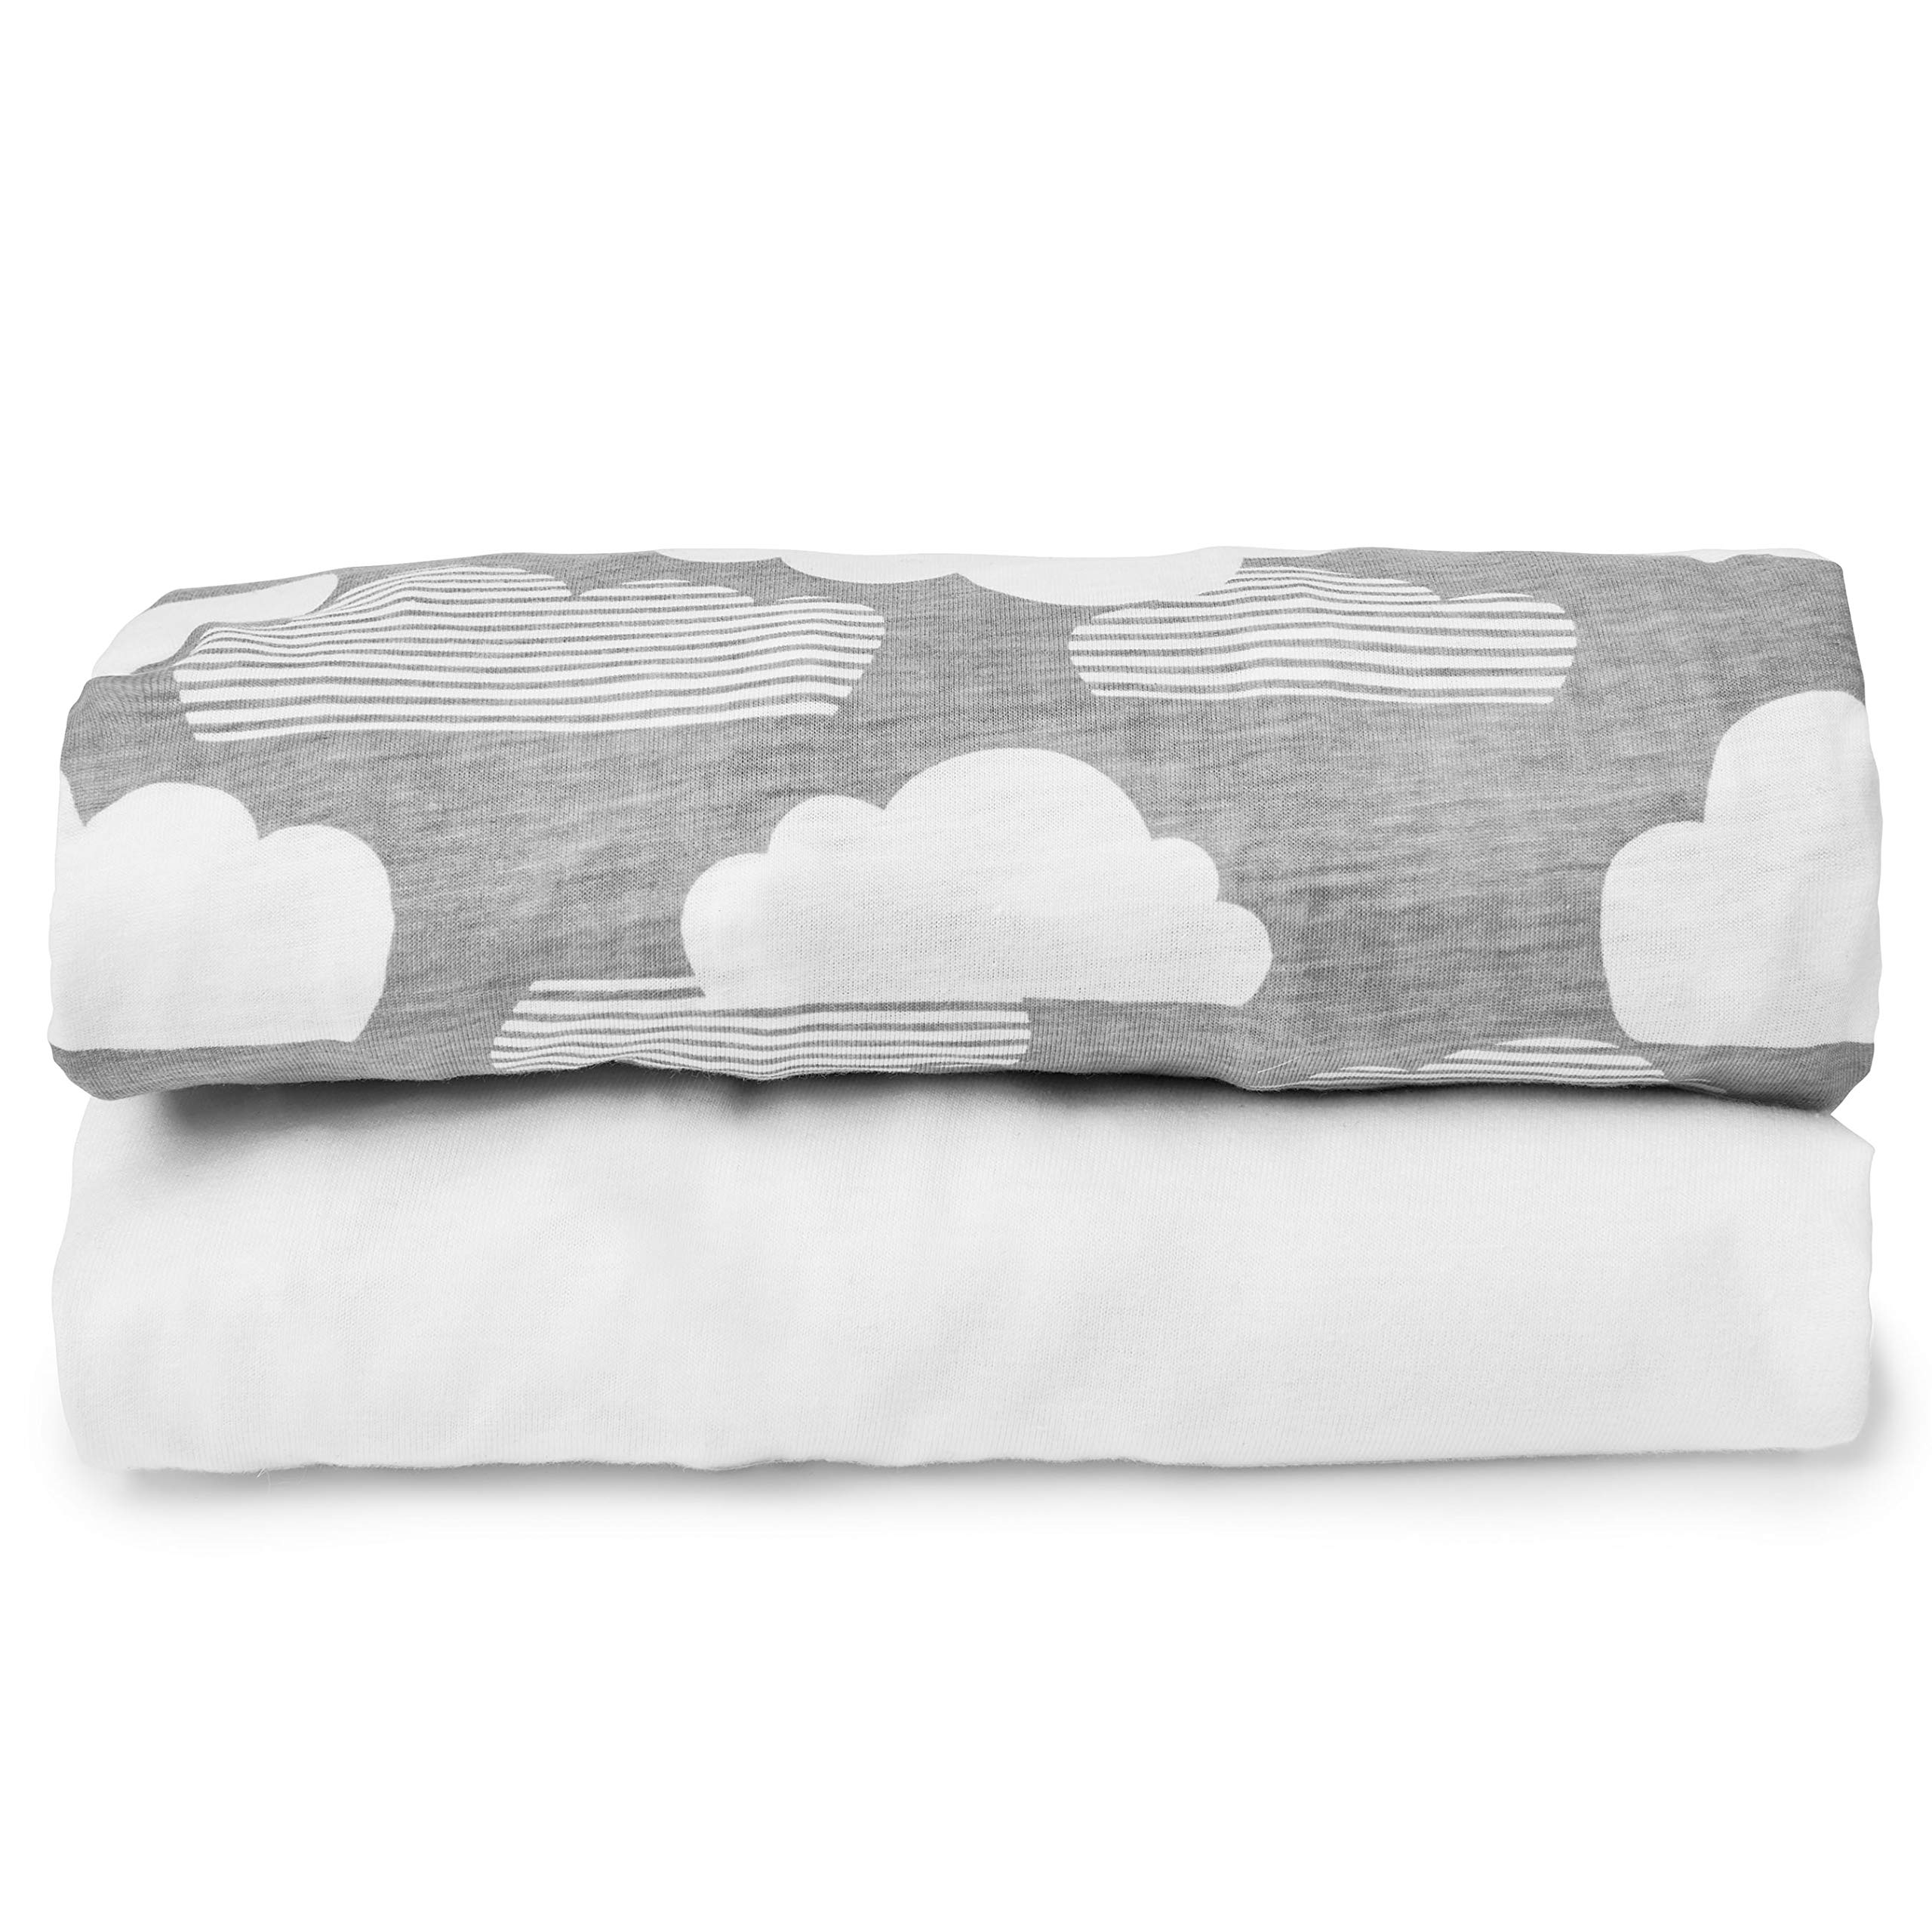 Skip Hop Universal Fitted Travel Crib and Playard Sheet Set by Skip Hop